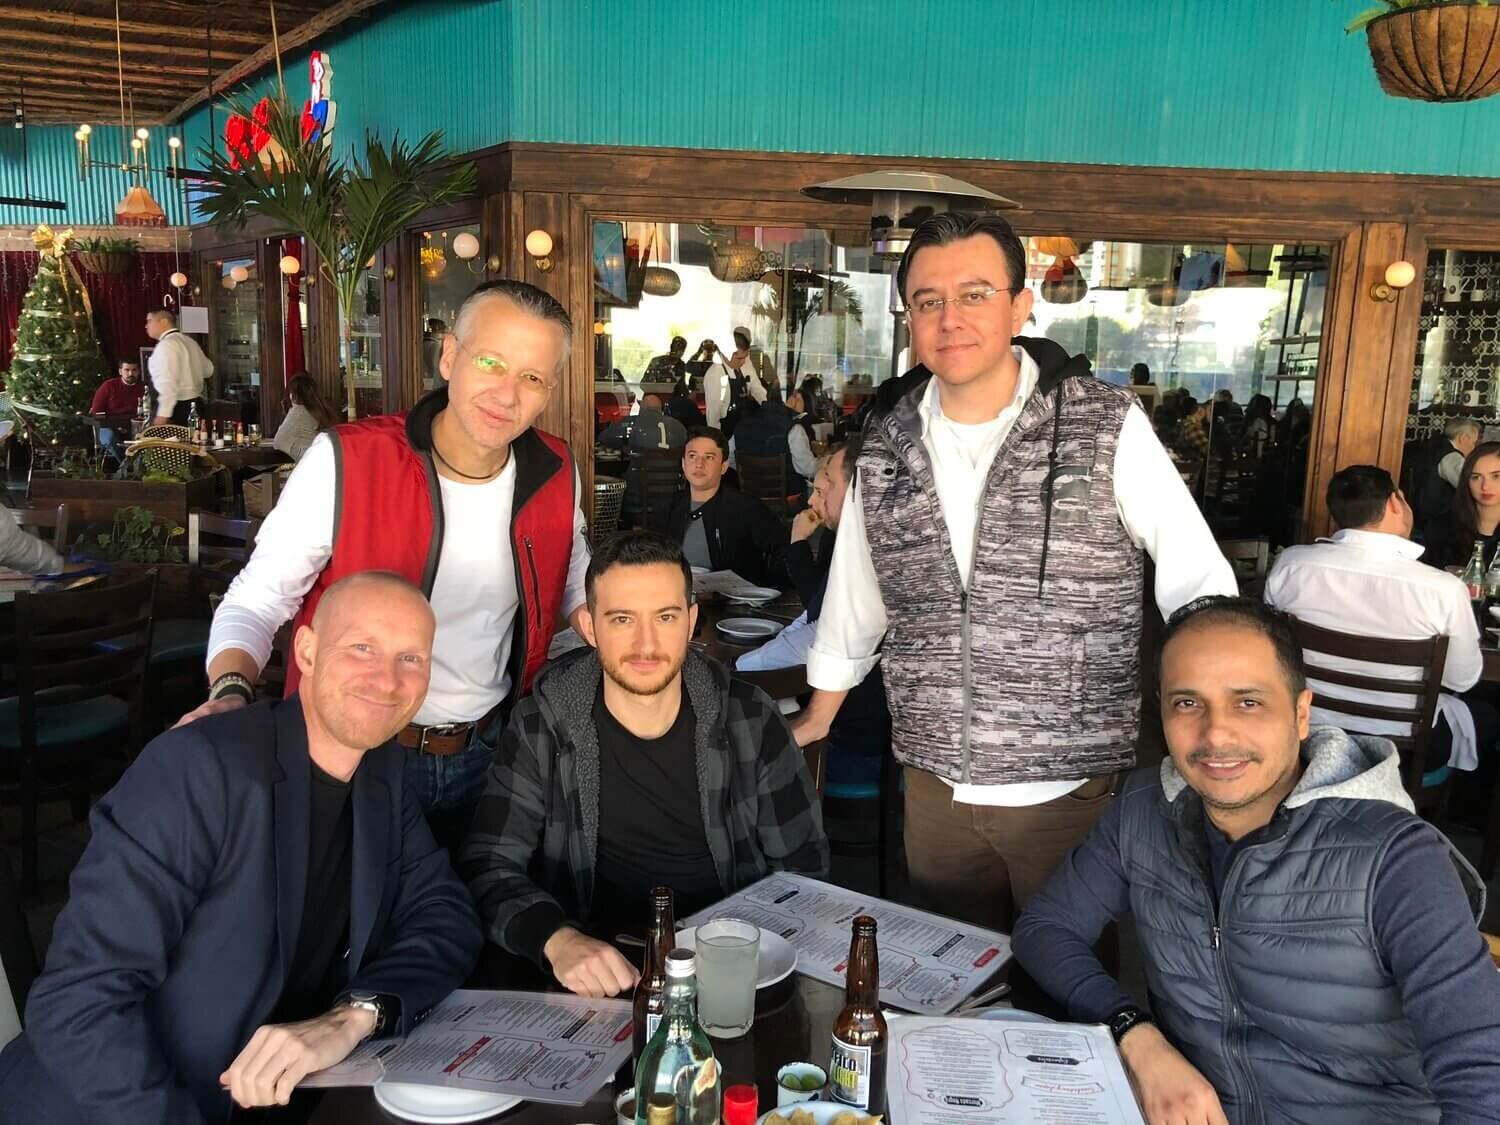 """Bjarke Calvin, CEO & Founder: """"The Duckling team is spread across the globe, so we are still working on a full group picture. But here I am with Jorge, Rafa, Humberto and Marco from our Mexican team. It's me in the lover left corner"""""""